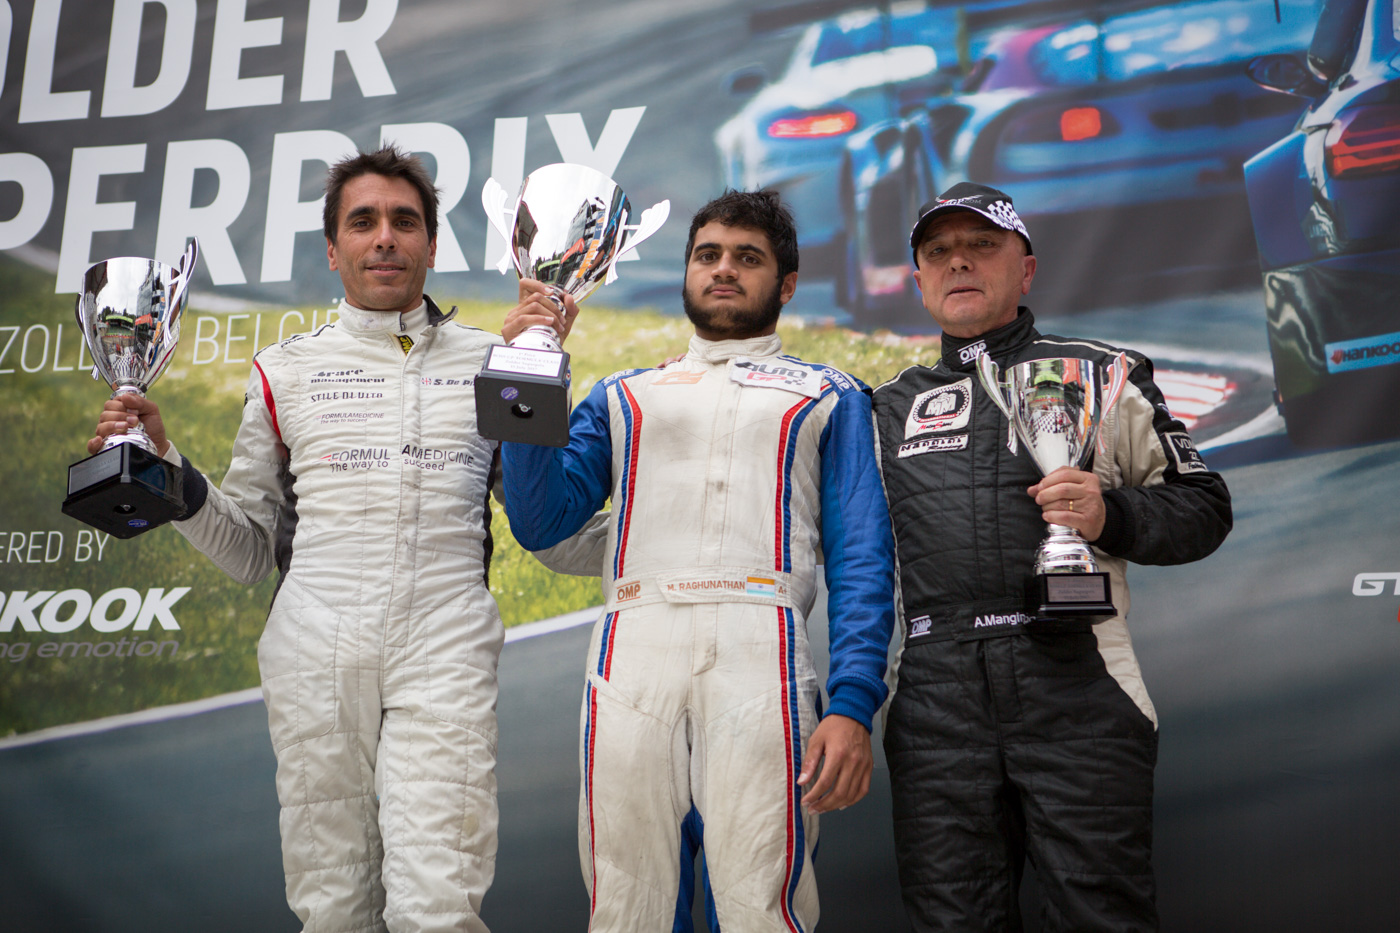 Podium of the FORMULA class at race 1 in Zolder 2017.